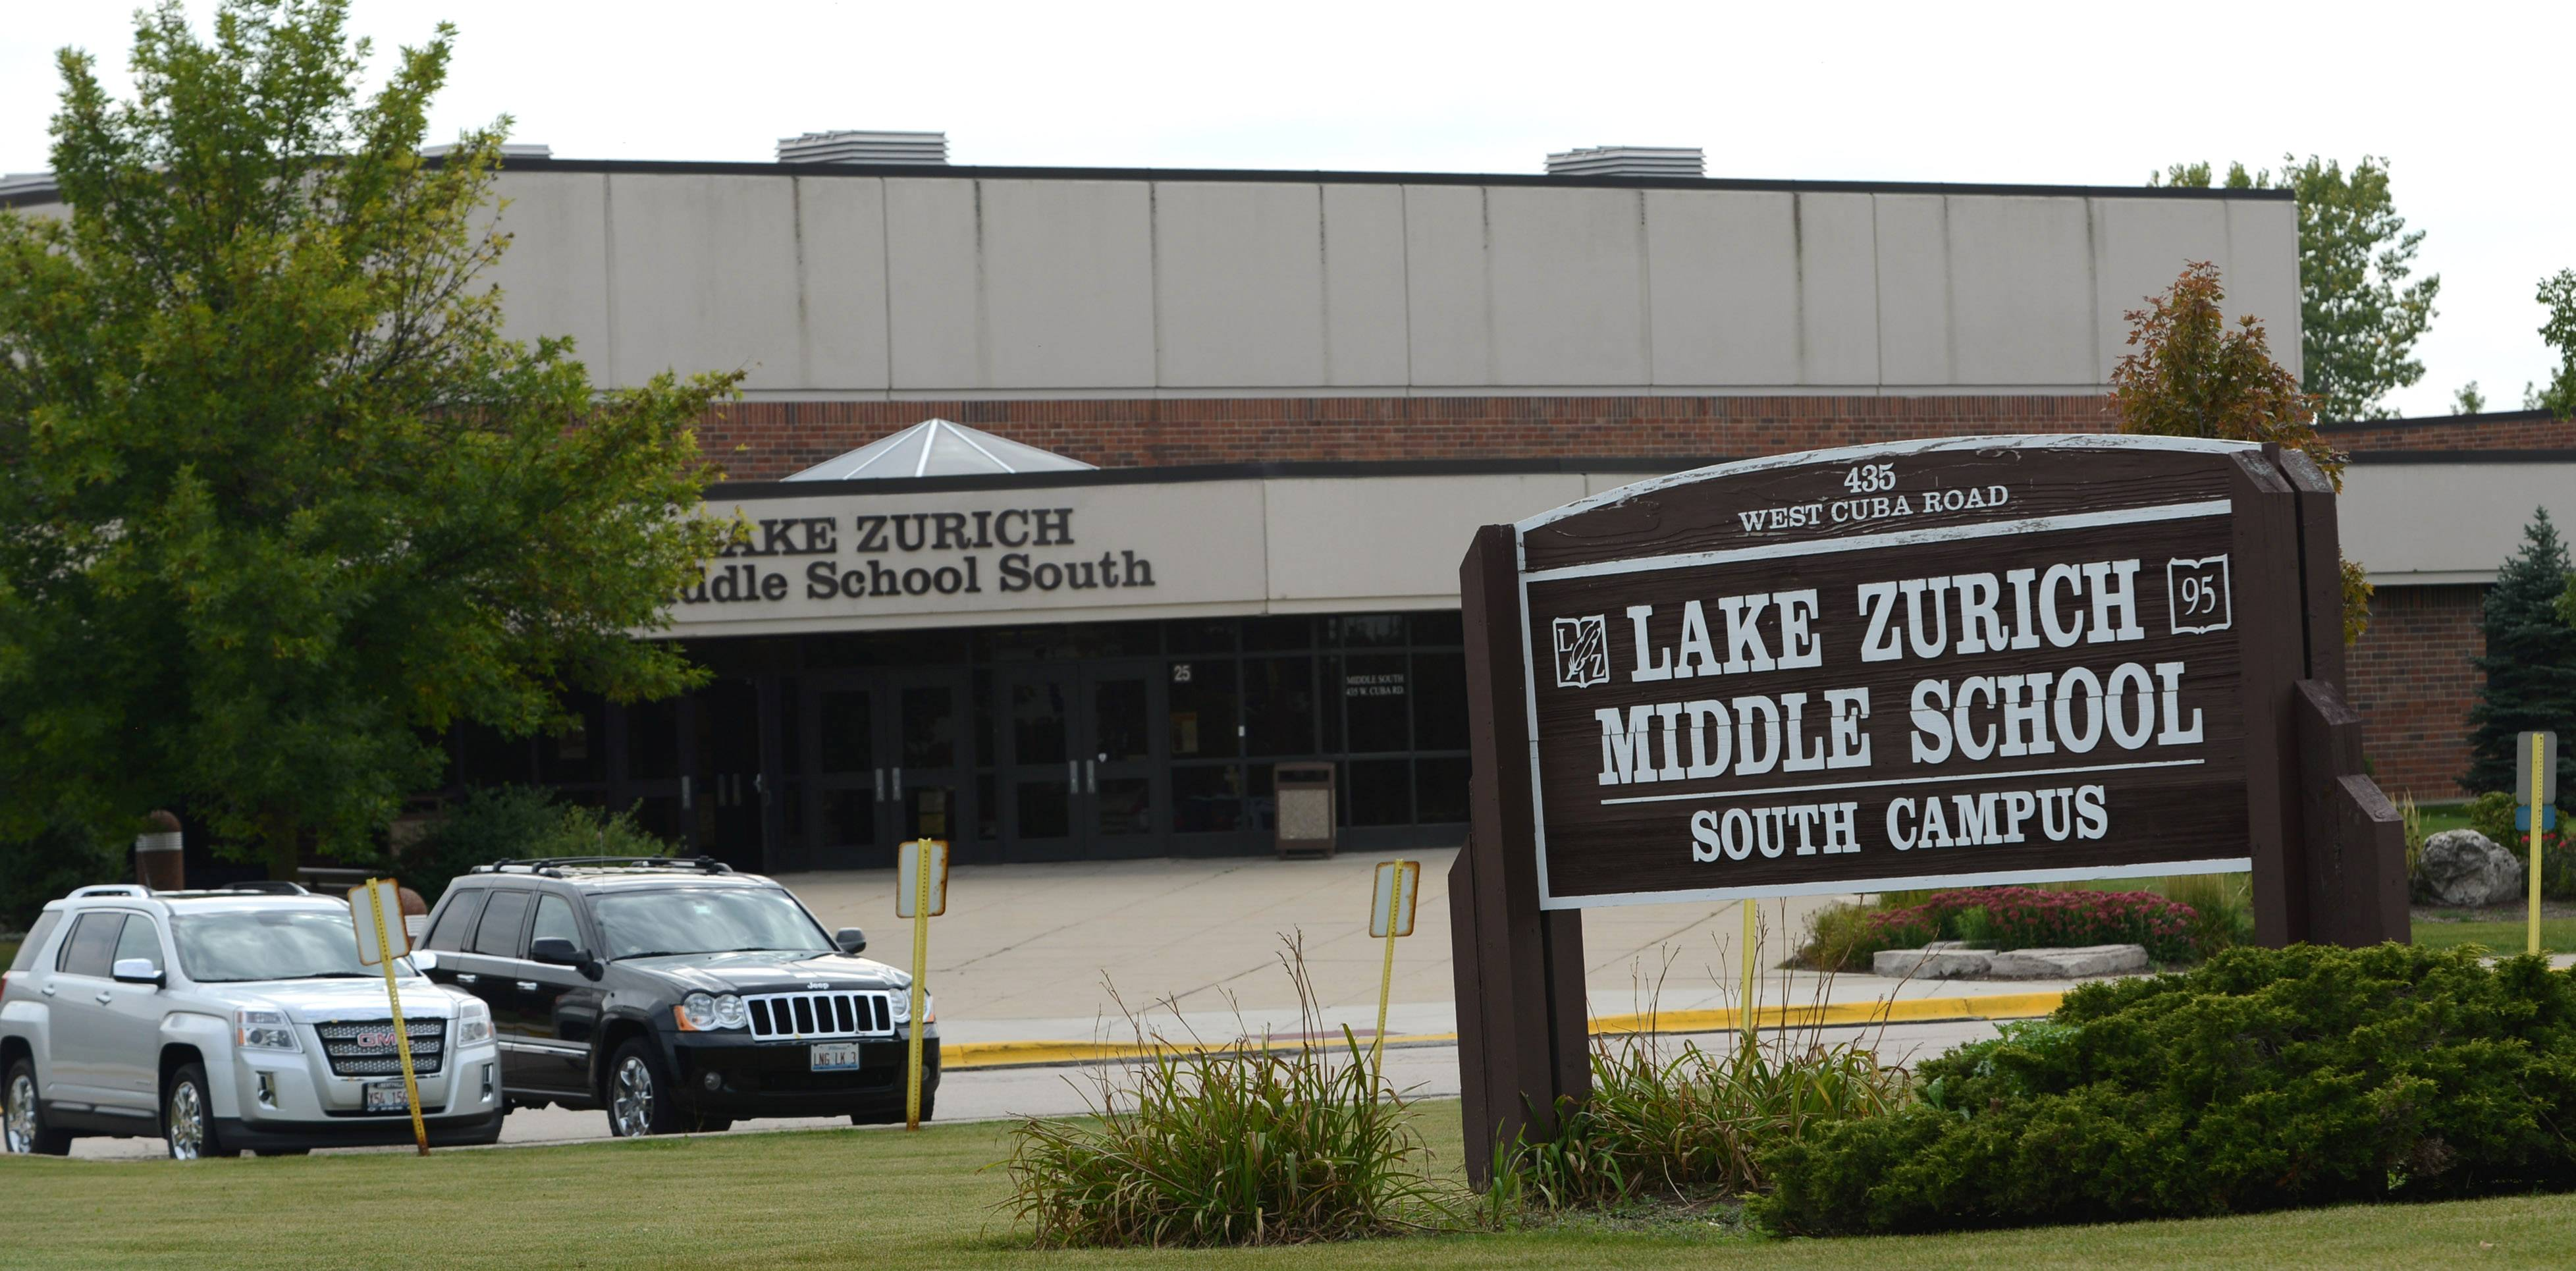 Students at Lake Zurich Middle School South and four other buildings without central air conditioning were sent home early Monday under a new excessive-heat policy.